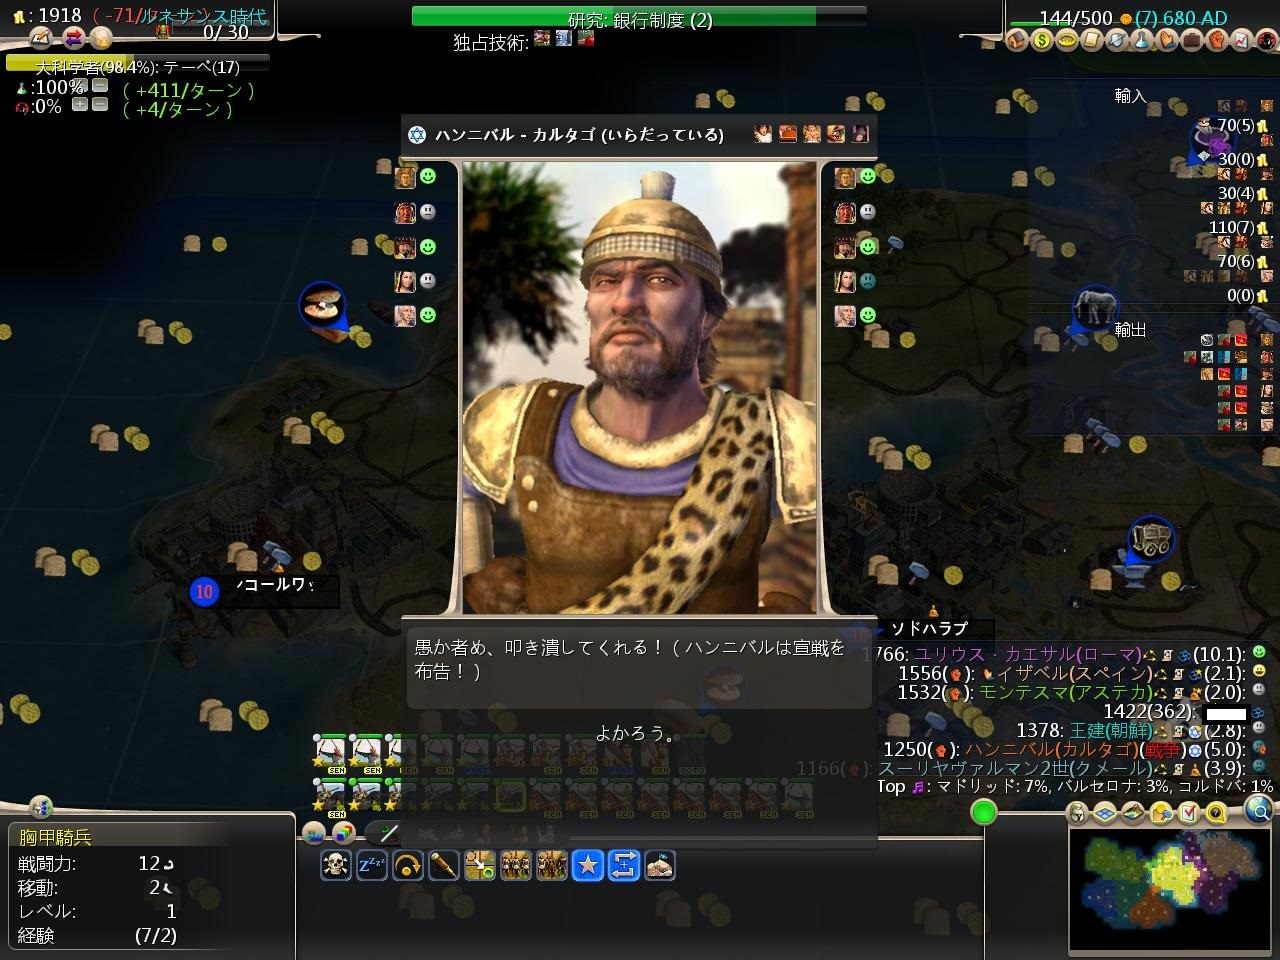 Civ4ScreenShot2141.JPG